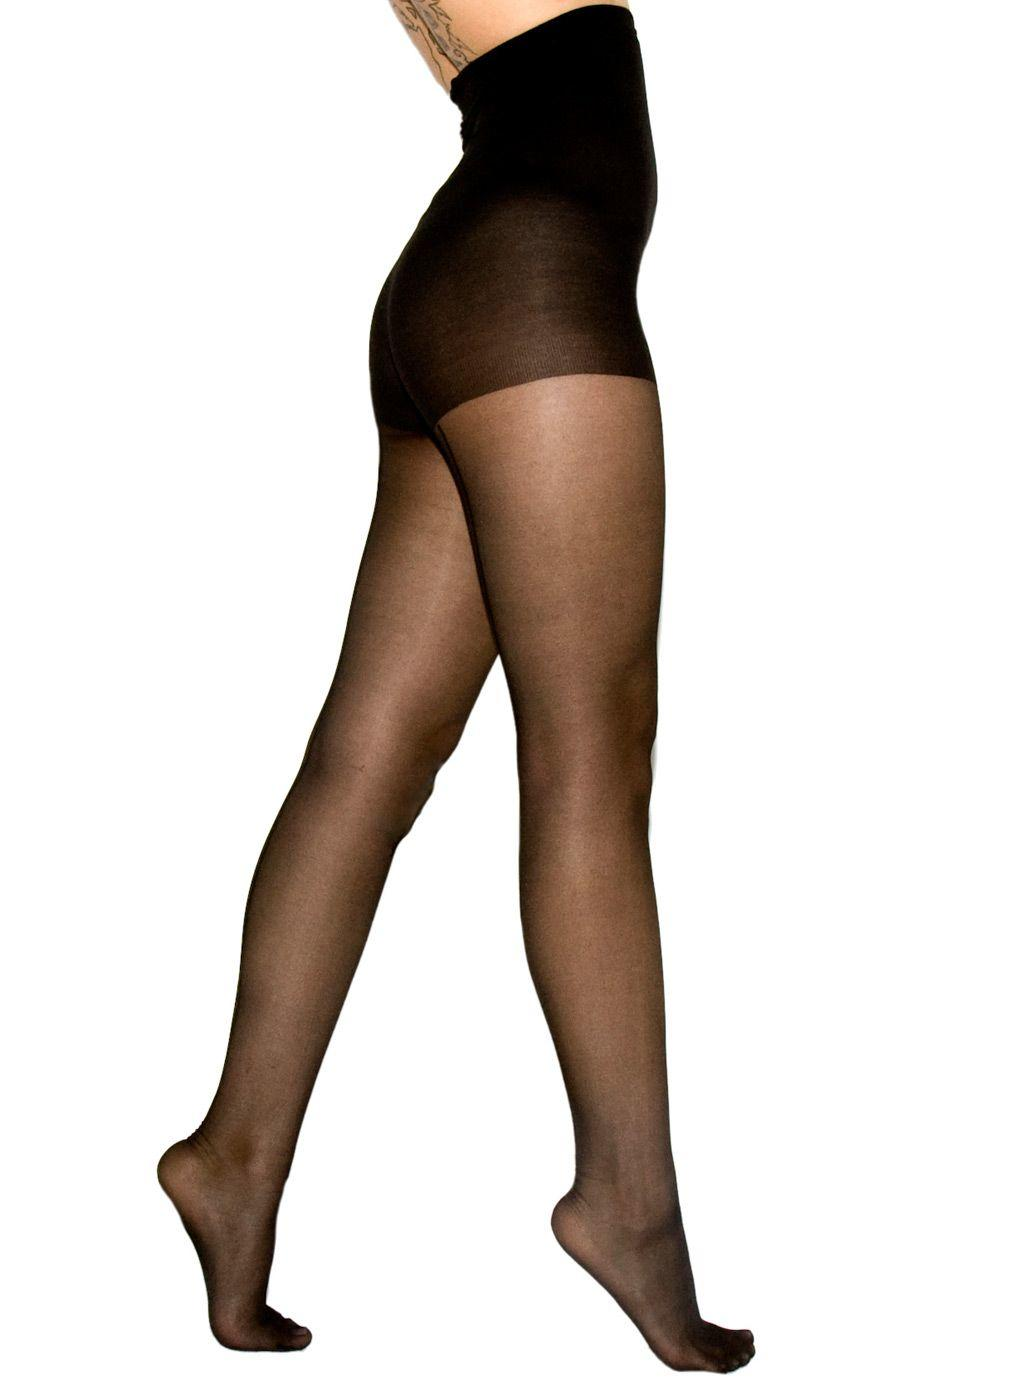 Seam Pantyhose Super Sheer 55